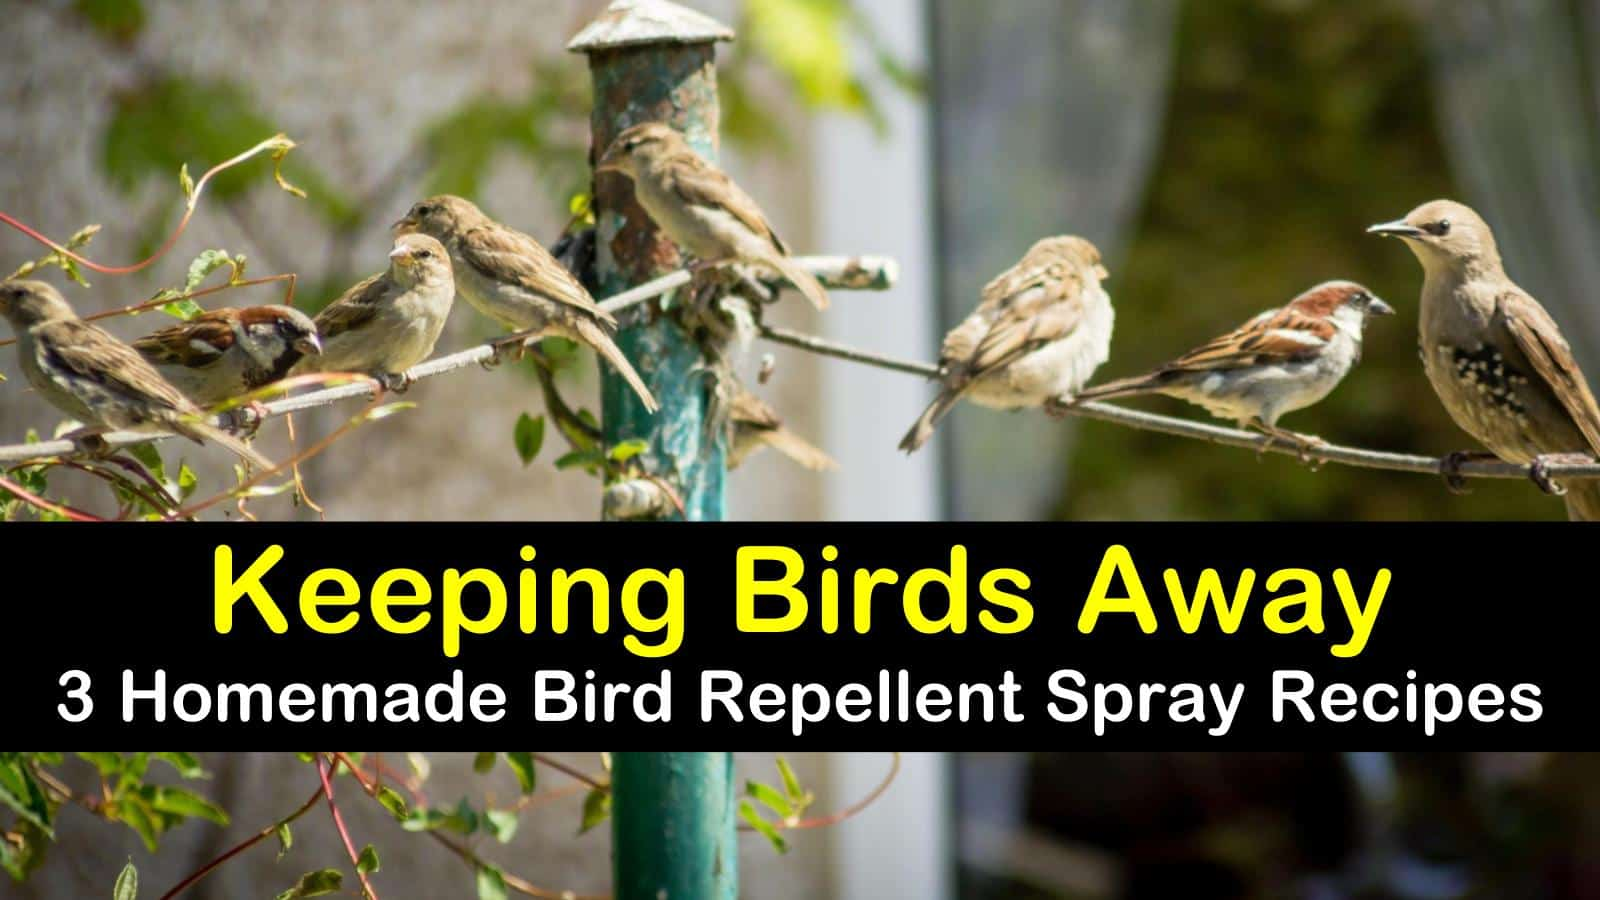 homemade bird repellent spray titleimg1